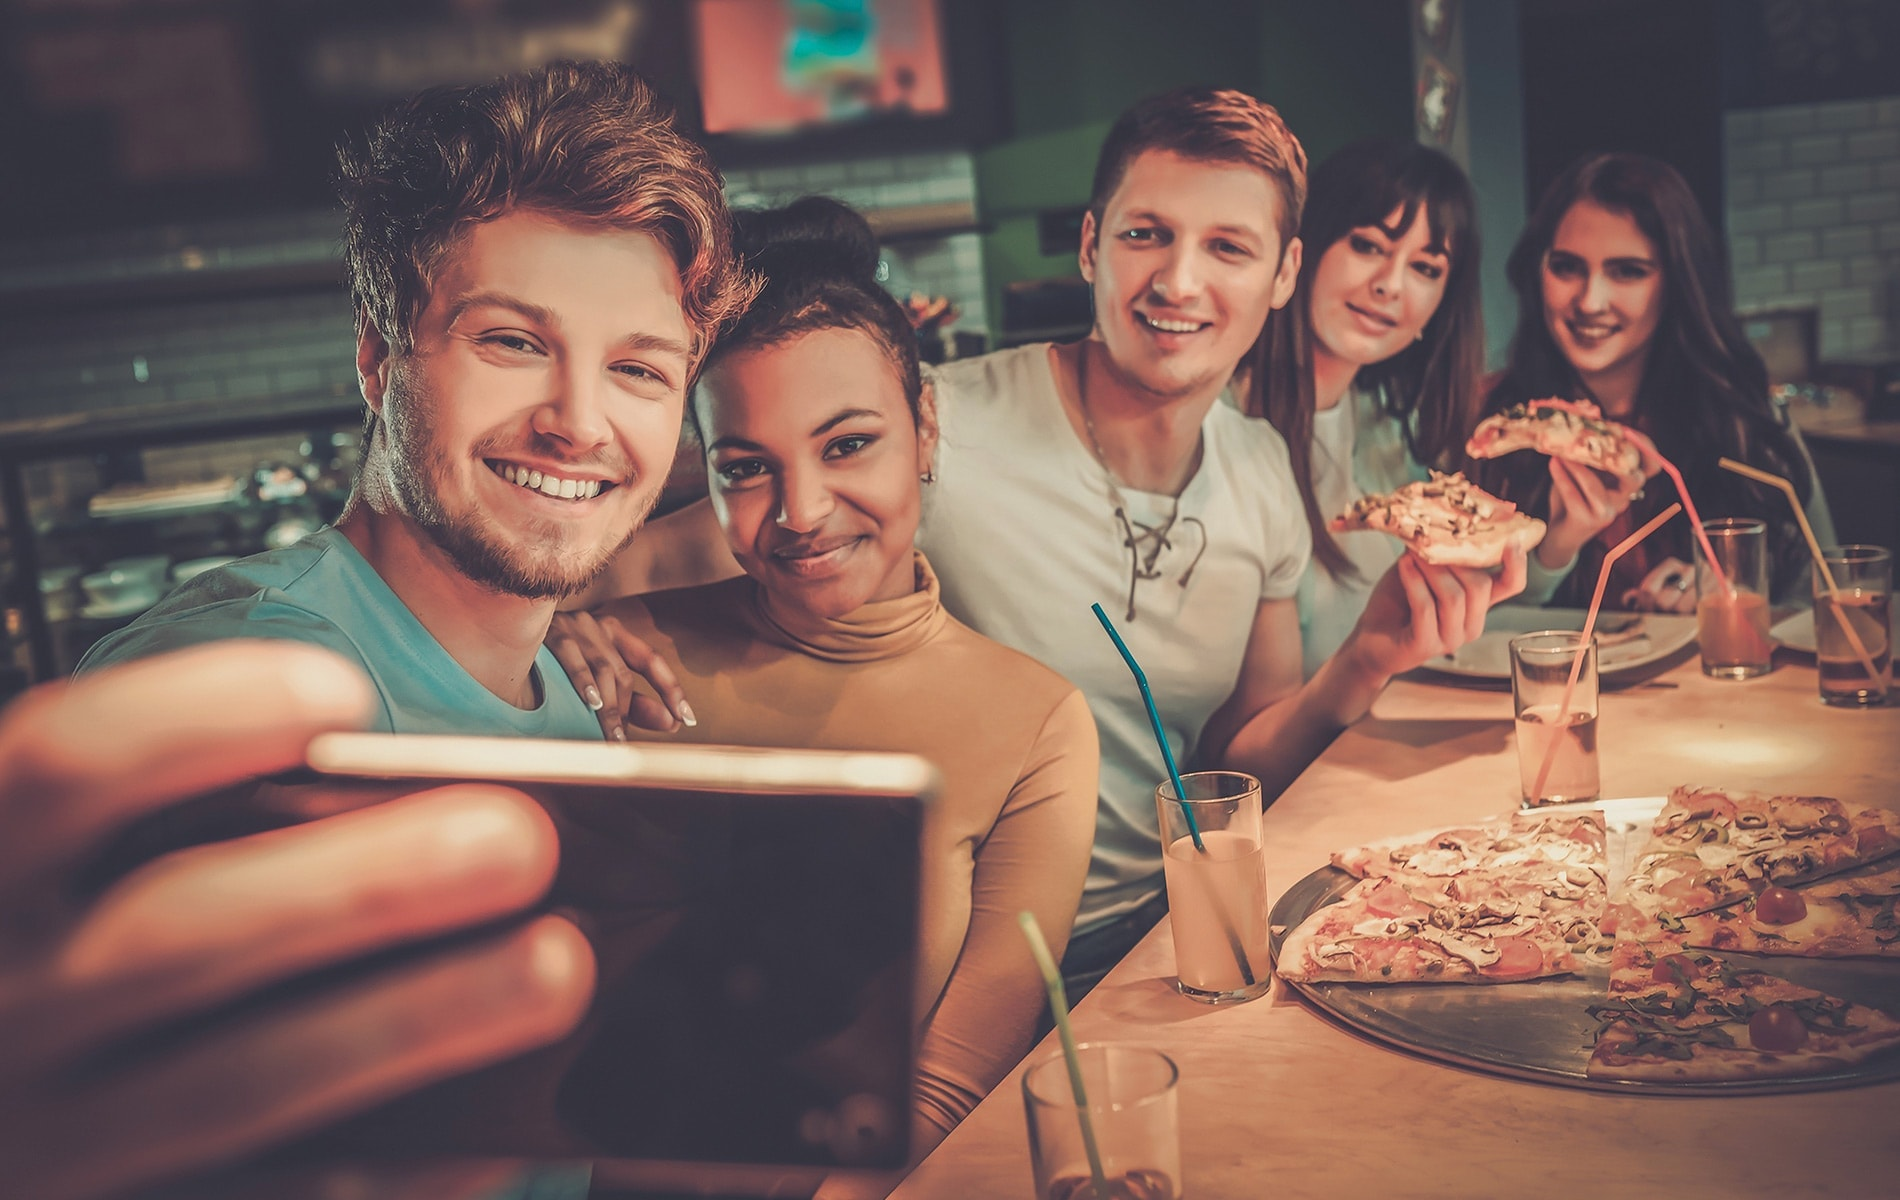 Cheerful group of five friends having fun eating pizza and taking a selfie.